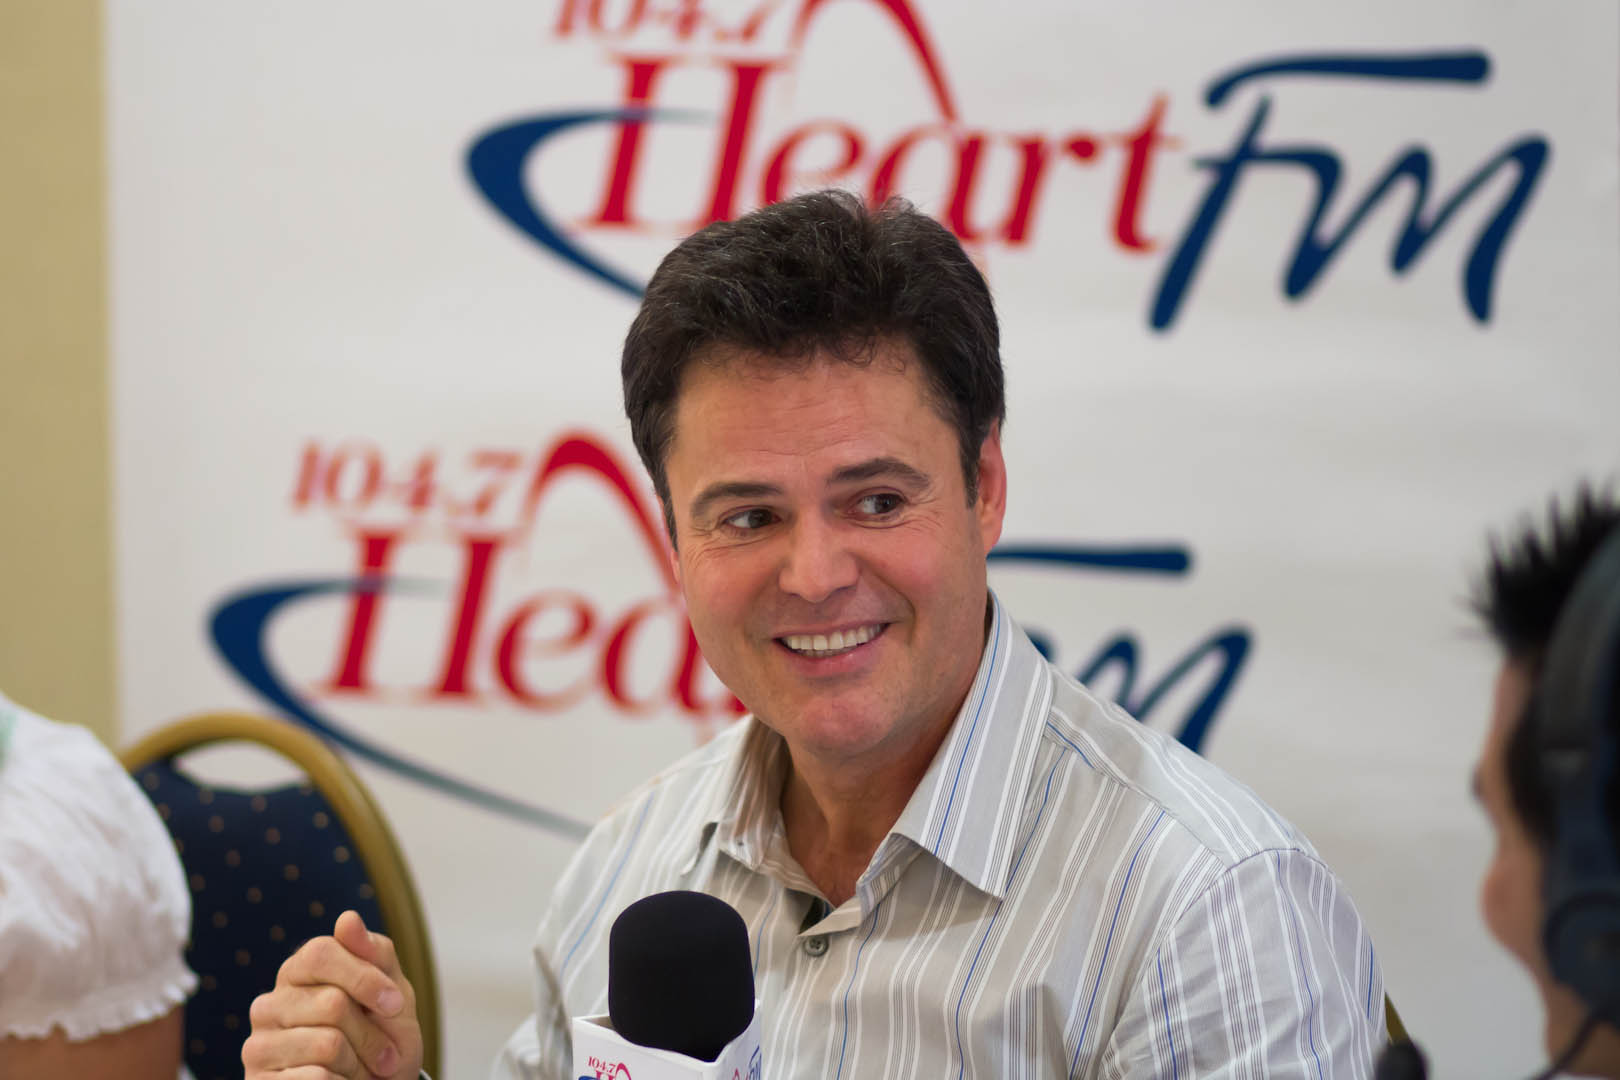 08-07-11_Donnie-Osmond14-4.jpg